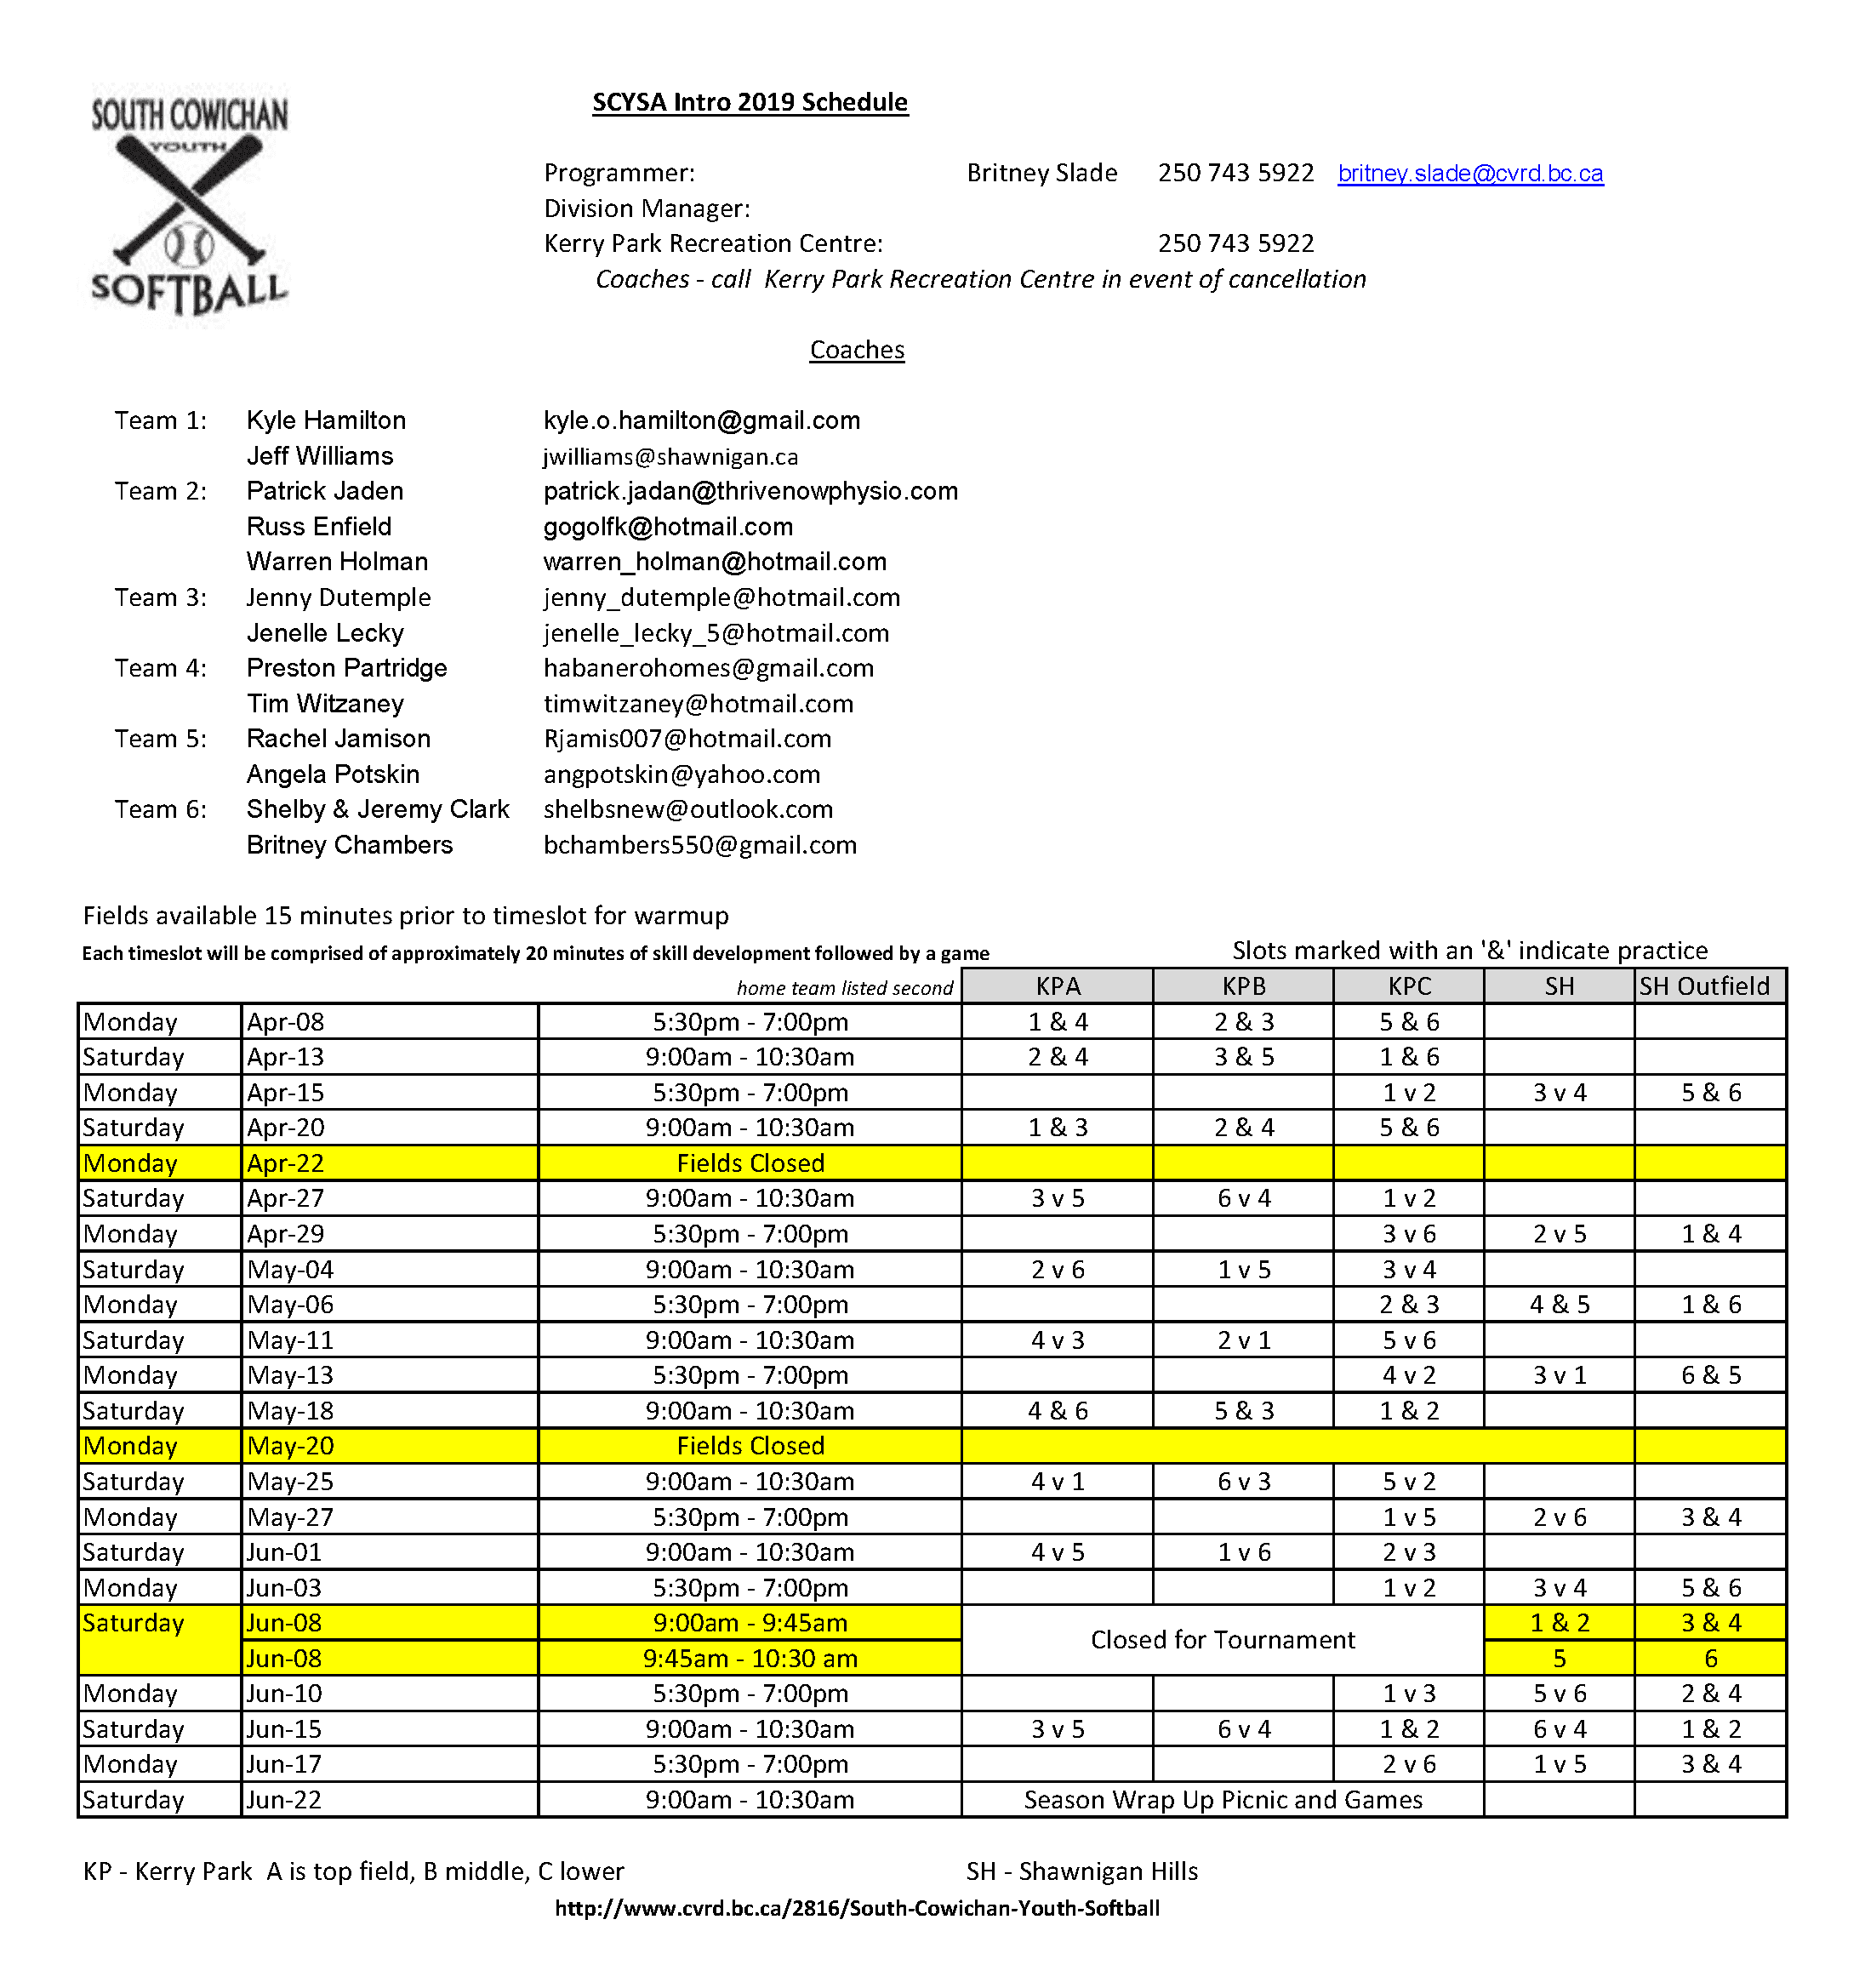 Intro 2019 Schedules